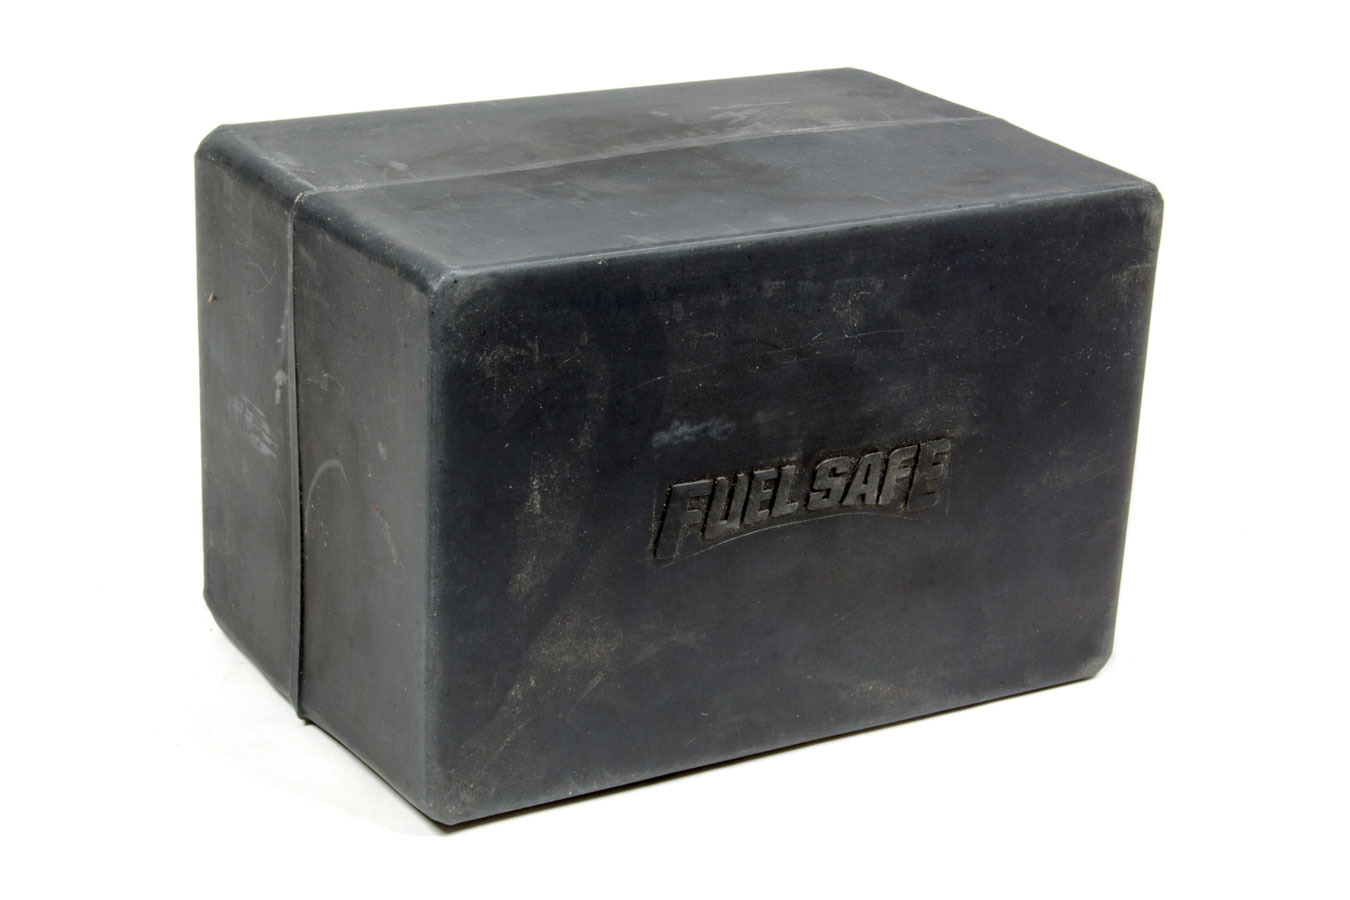 Fuel Safe DB100 Fuel Displacement Block, 1 gal, 8-1/4 x 5-1/4 x 5-1/4 in, Each